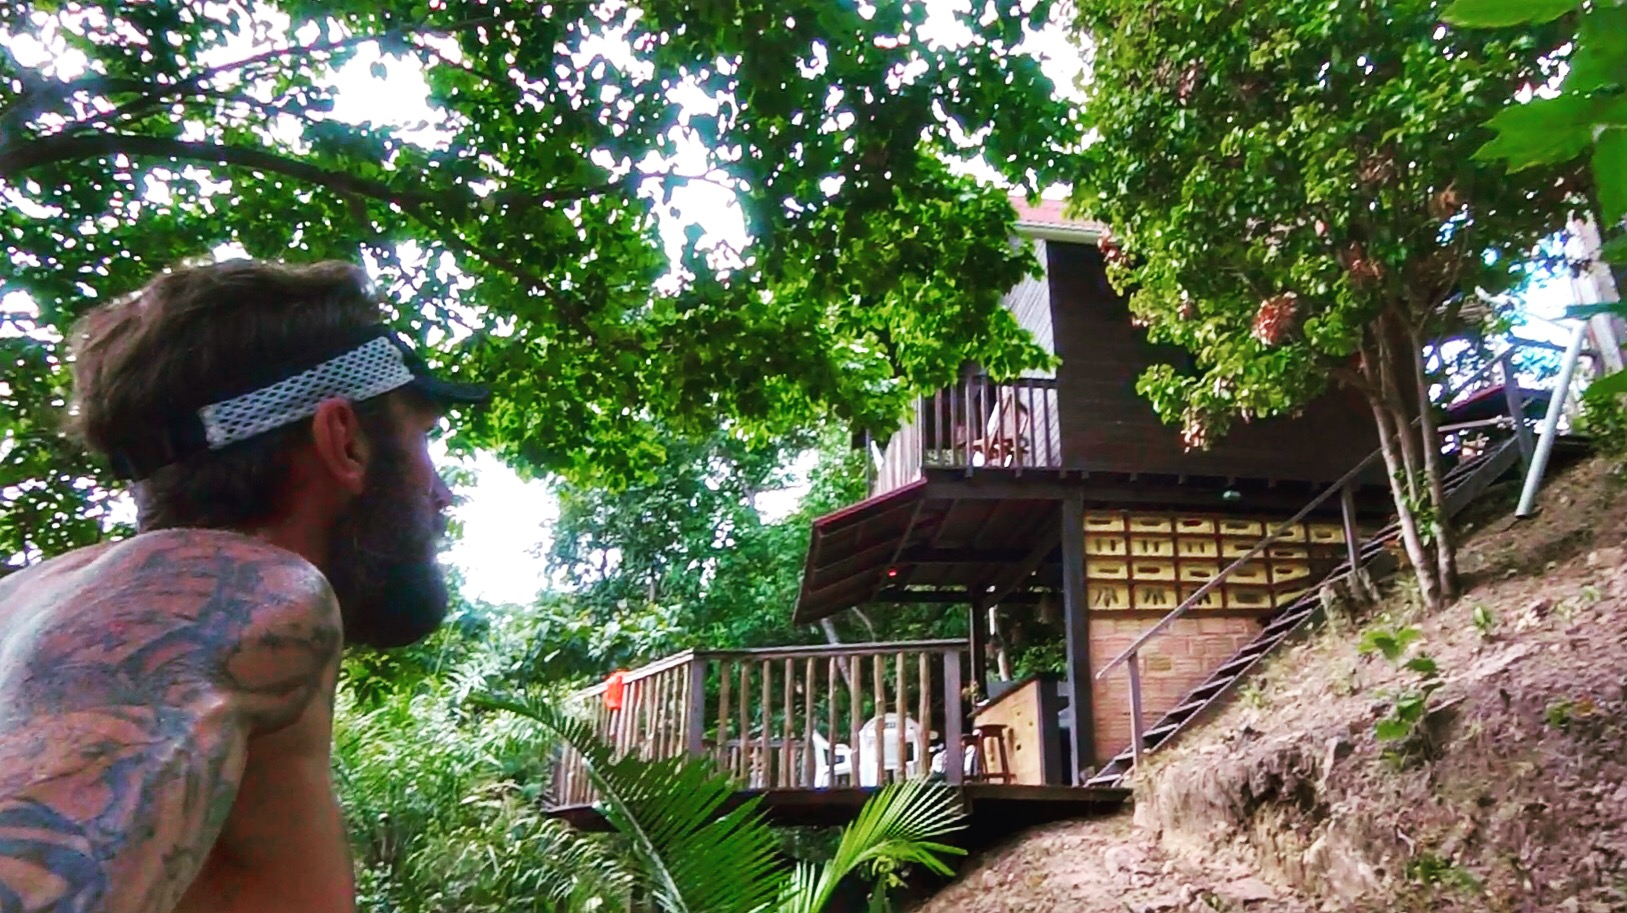 Picture:   Our accommodation in Alter do Chao sourced through Airbnb. Perfect for our last week of prep before Jungle Marathon 2017.